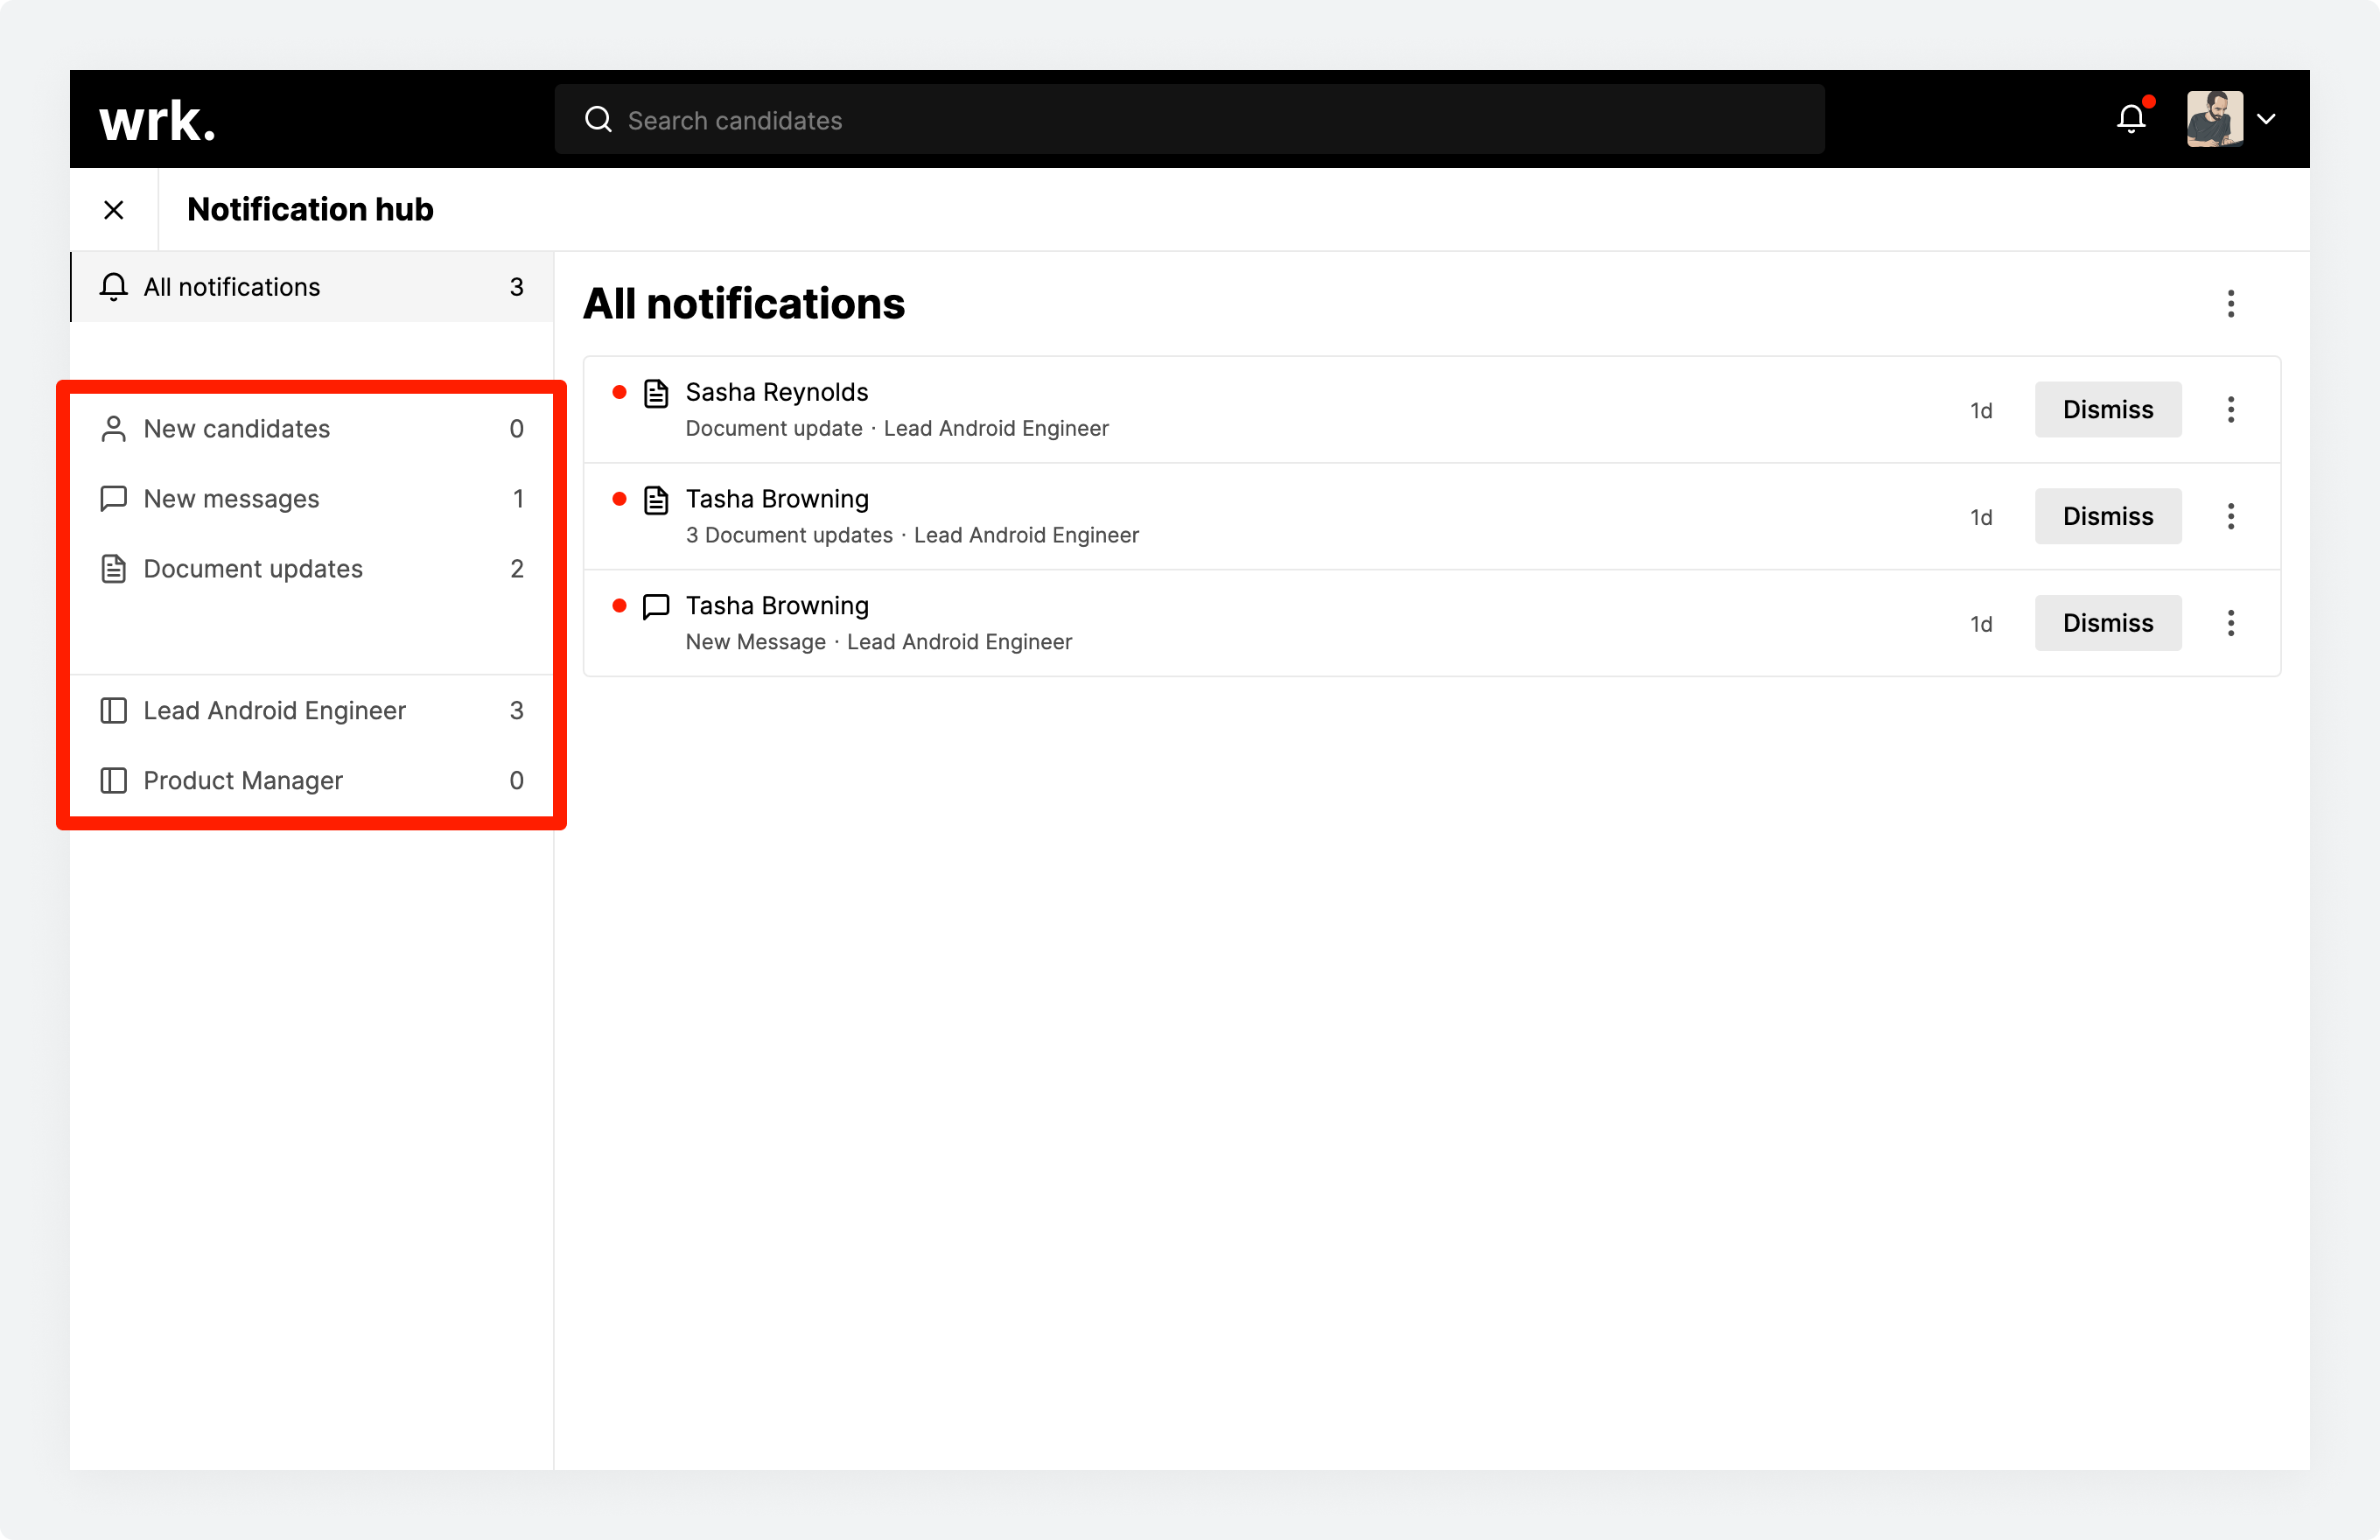 The notification hub in Wrk with the list filters highlighted